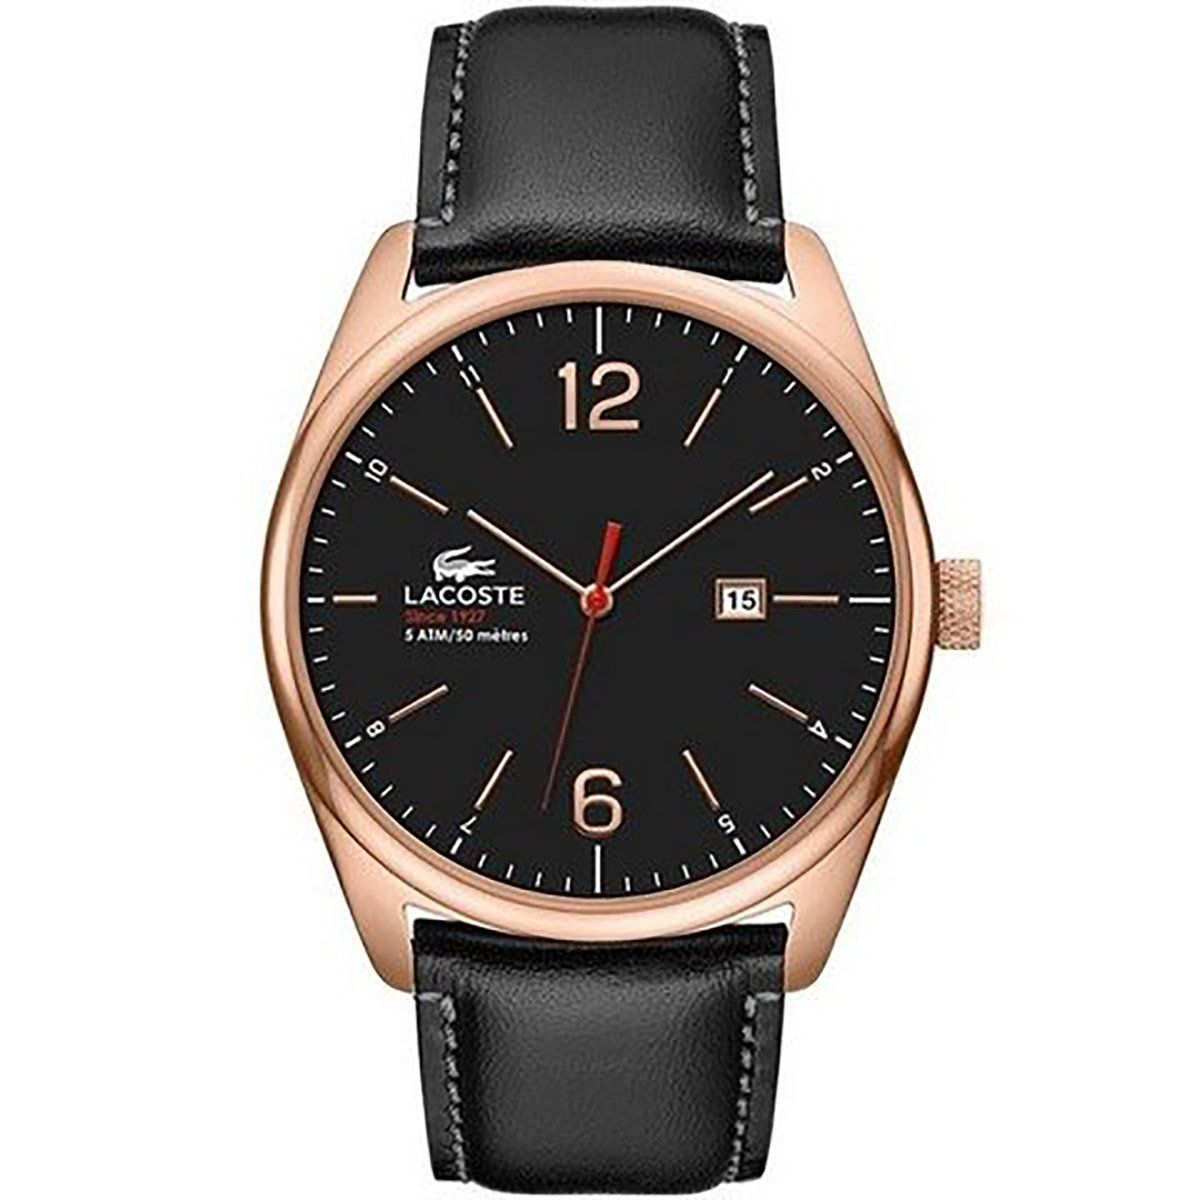 lacoste men s 2010747 austin red gold watch made in usa or lacoste men s 2010747 austin red gold watch made in usa or imported